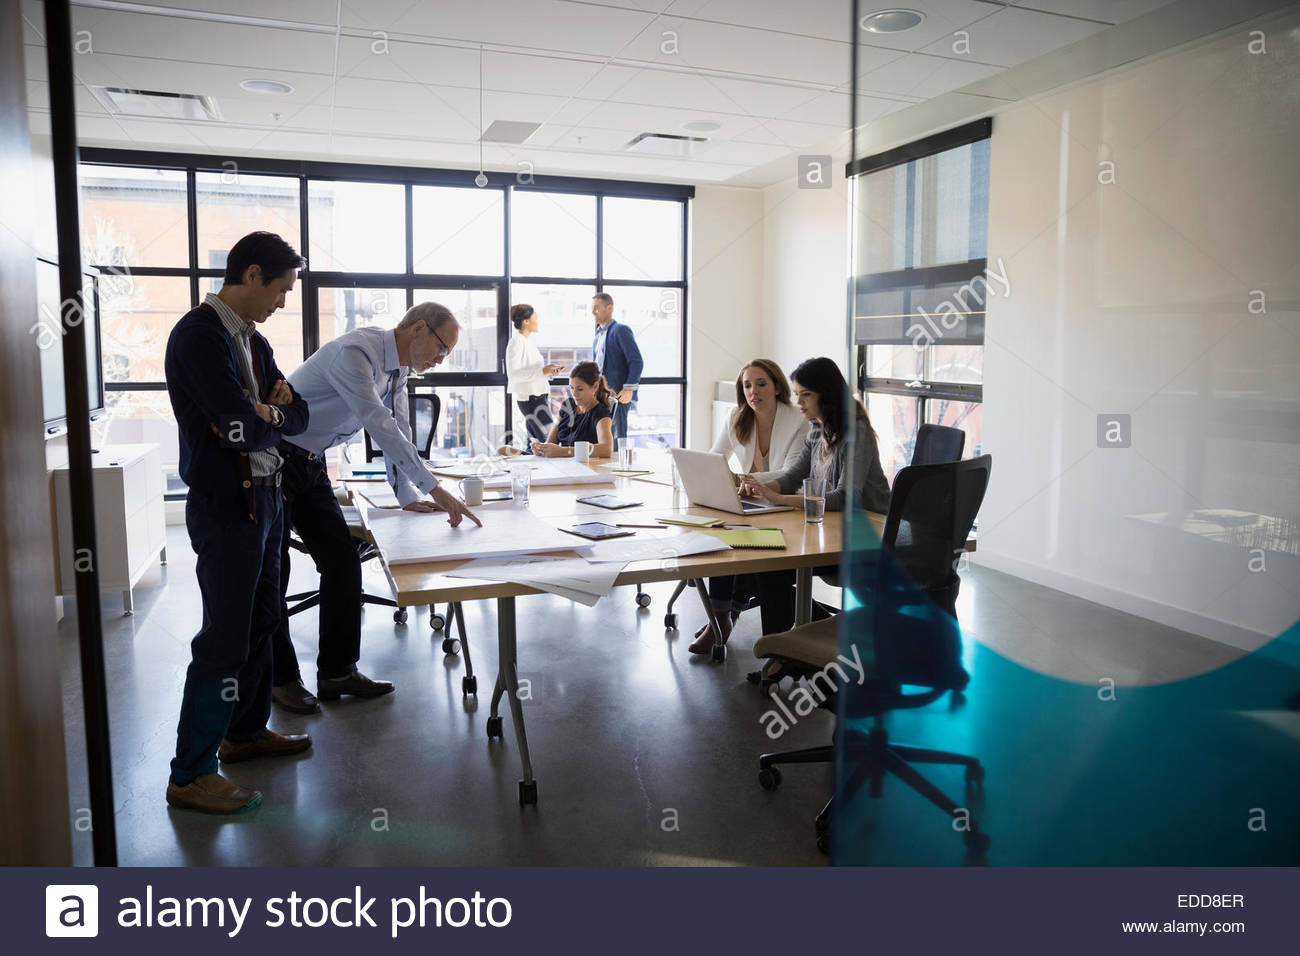 Business people working in conference room - Stock Image